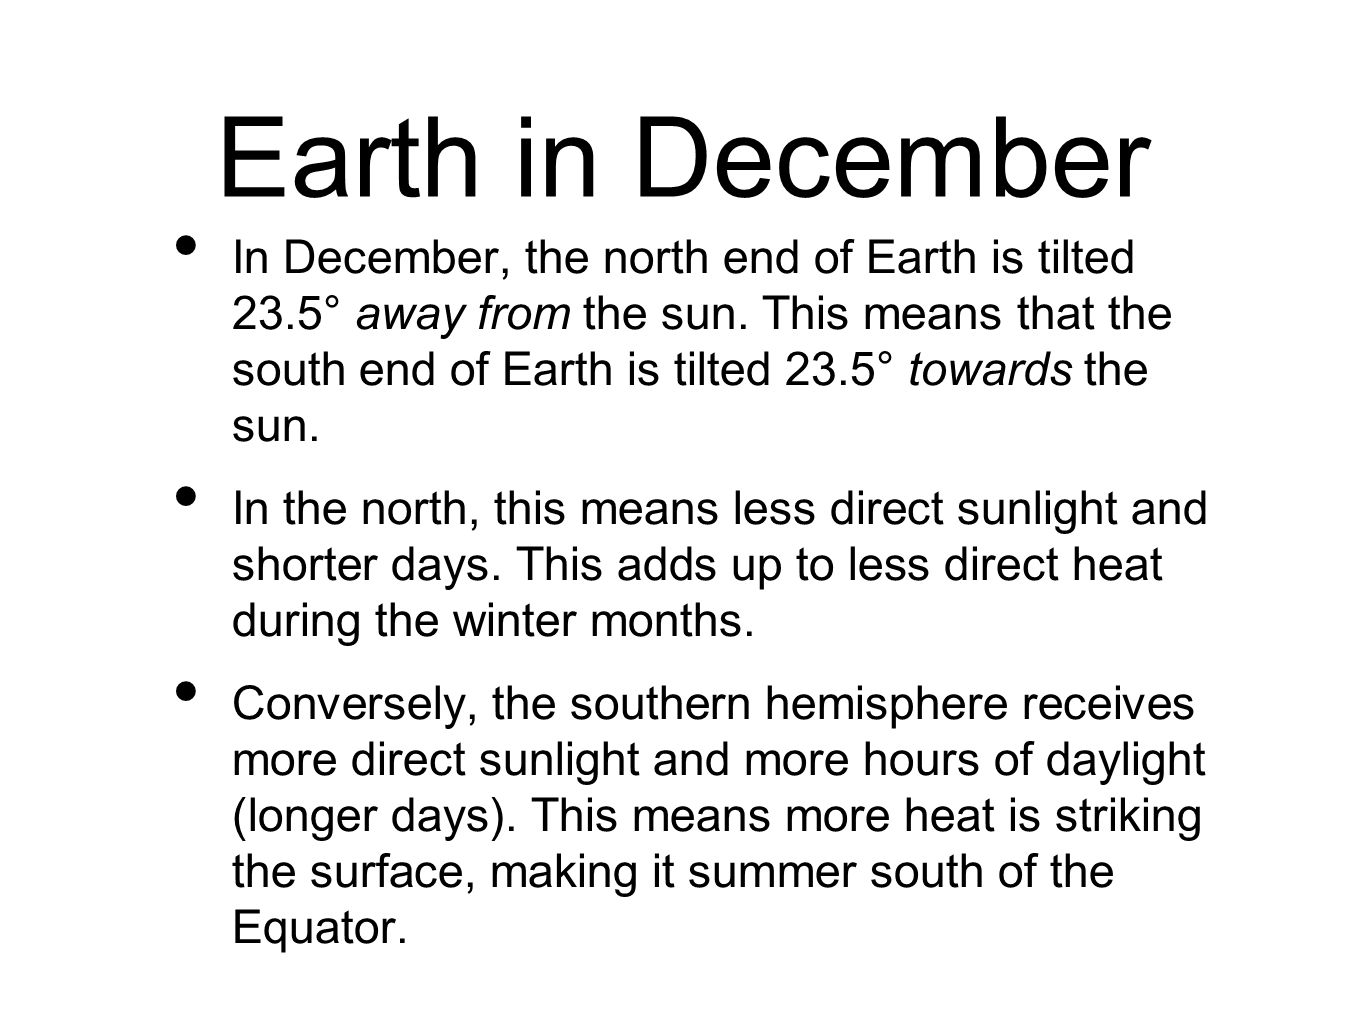 Earth in December In December, the north end of Earth is tilted 23.5° away from the sun.